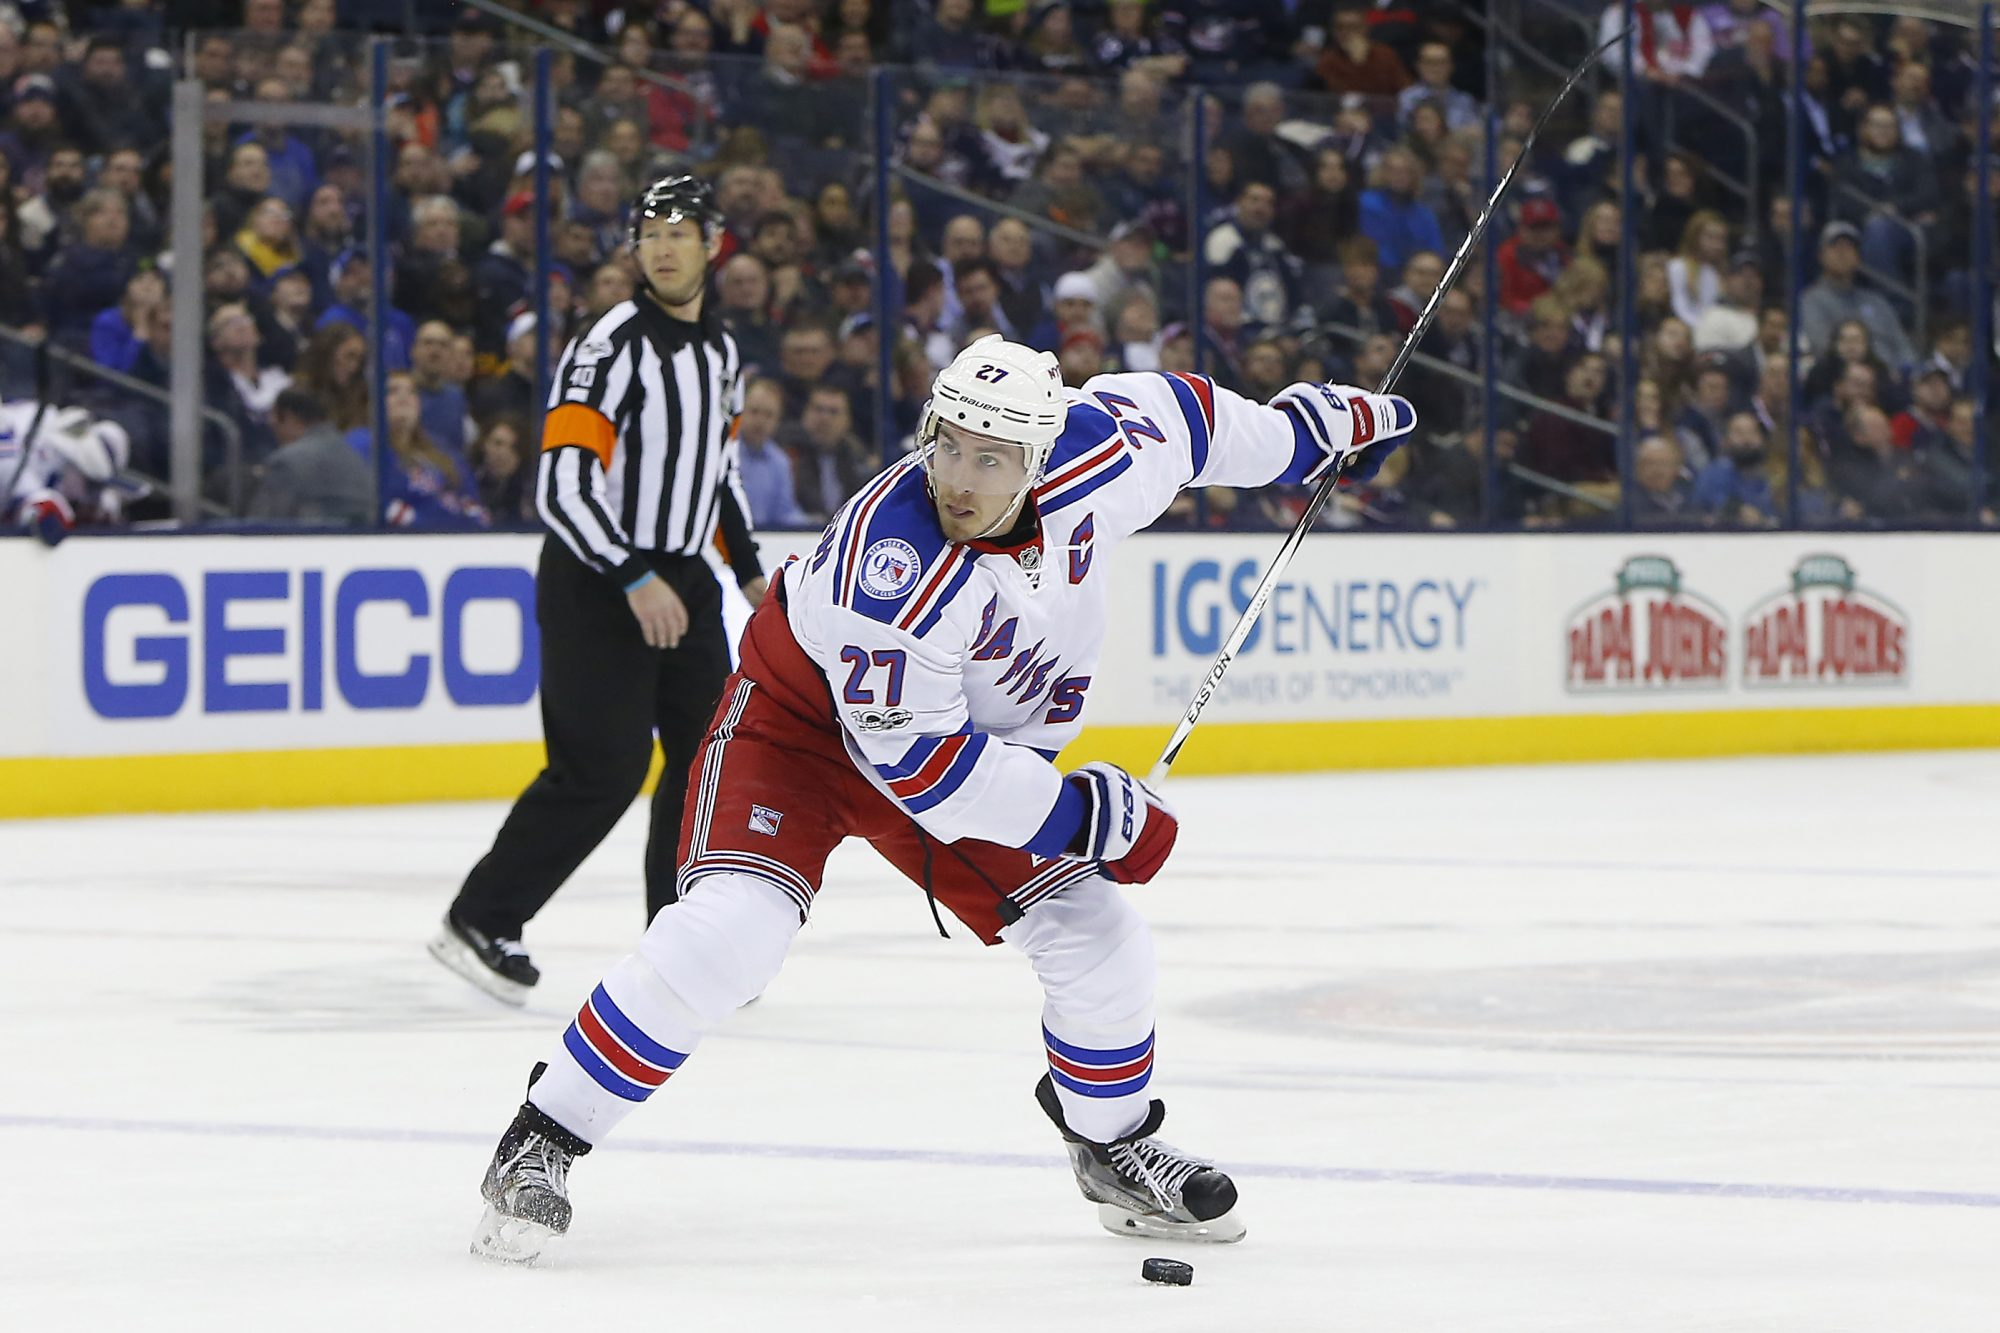 Jimmy Vesey's special goal lifts New York Rangers over Blue Jackets (Highlights)